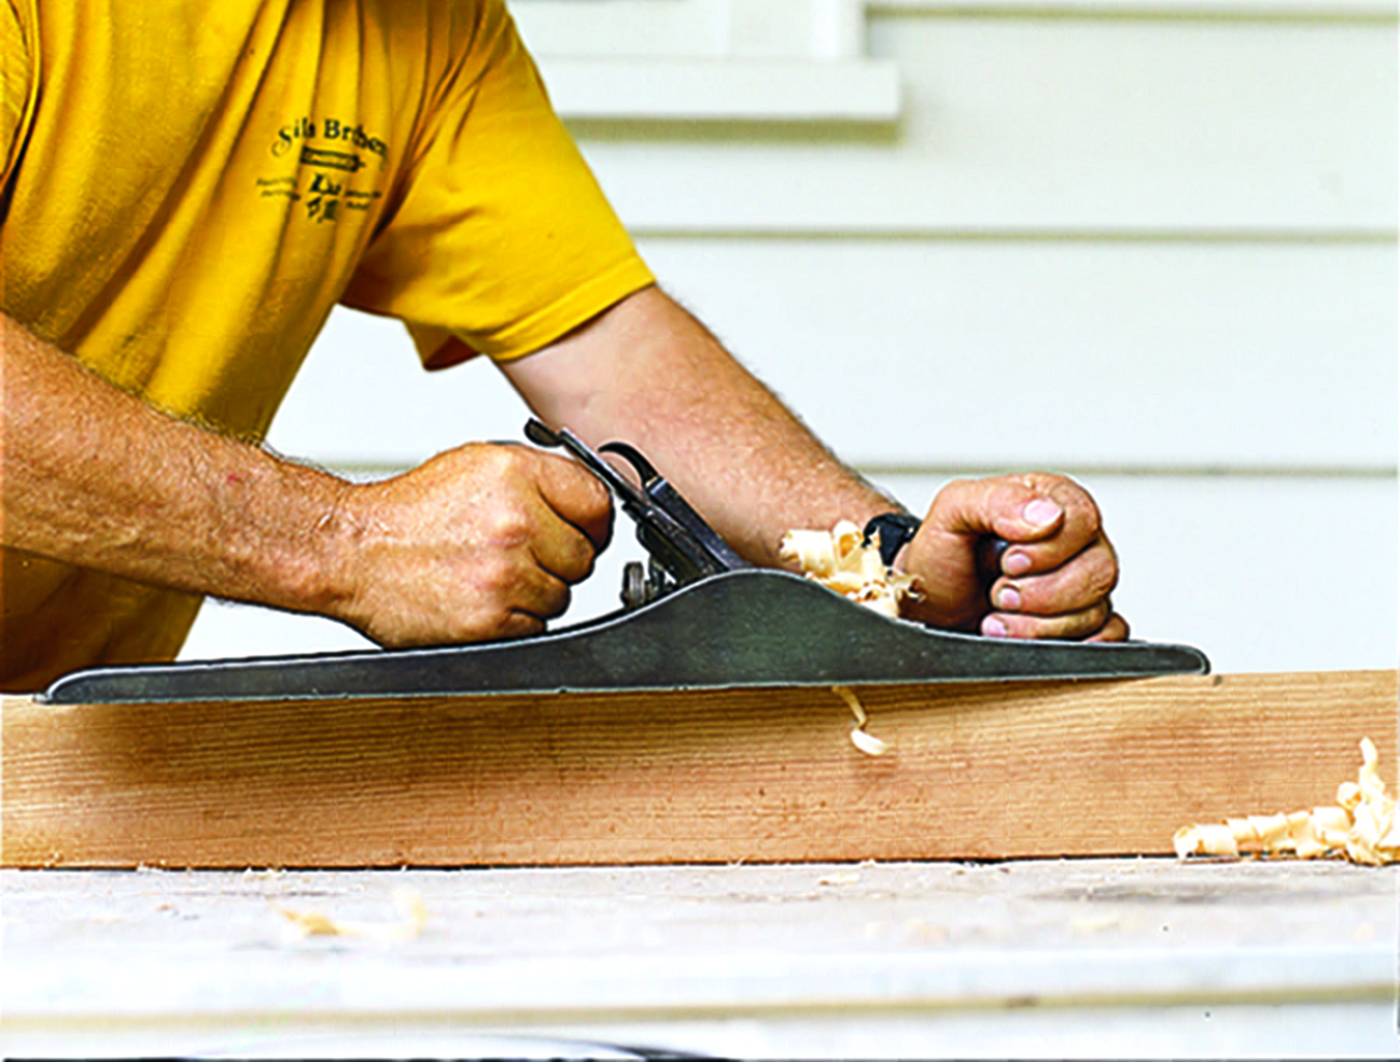 Person using a hand planer on wood.